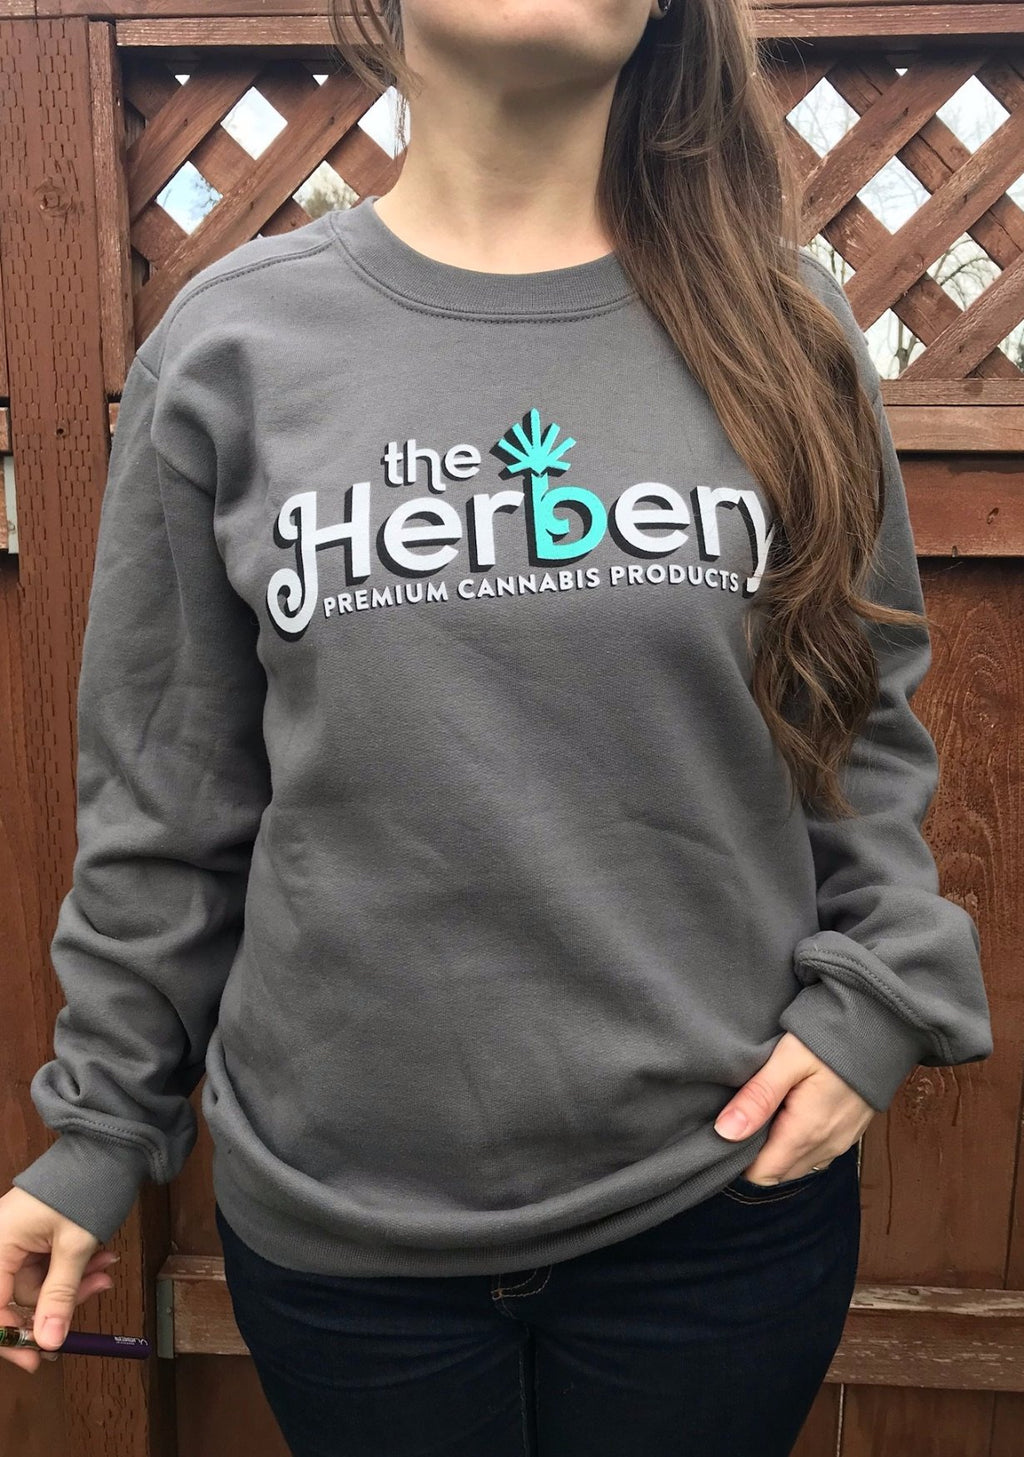 The Herbery Crewneck Sweatshirt